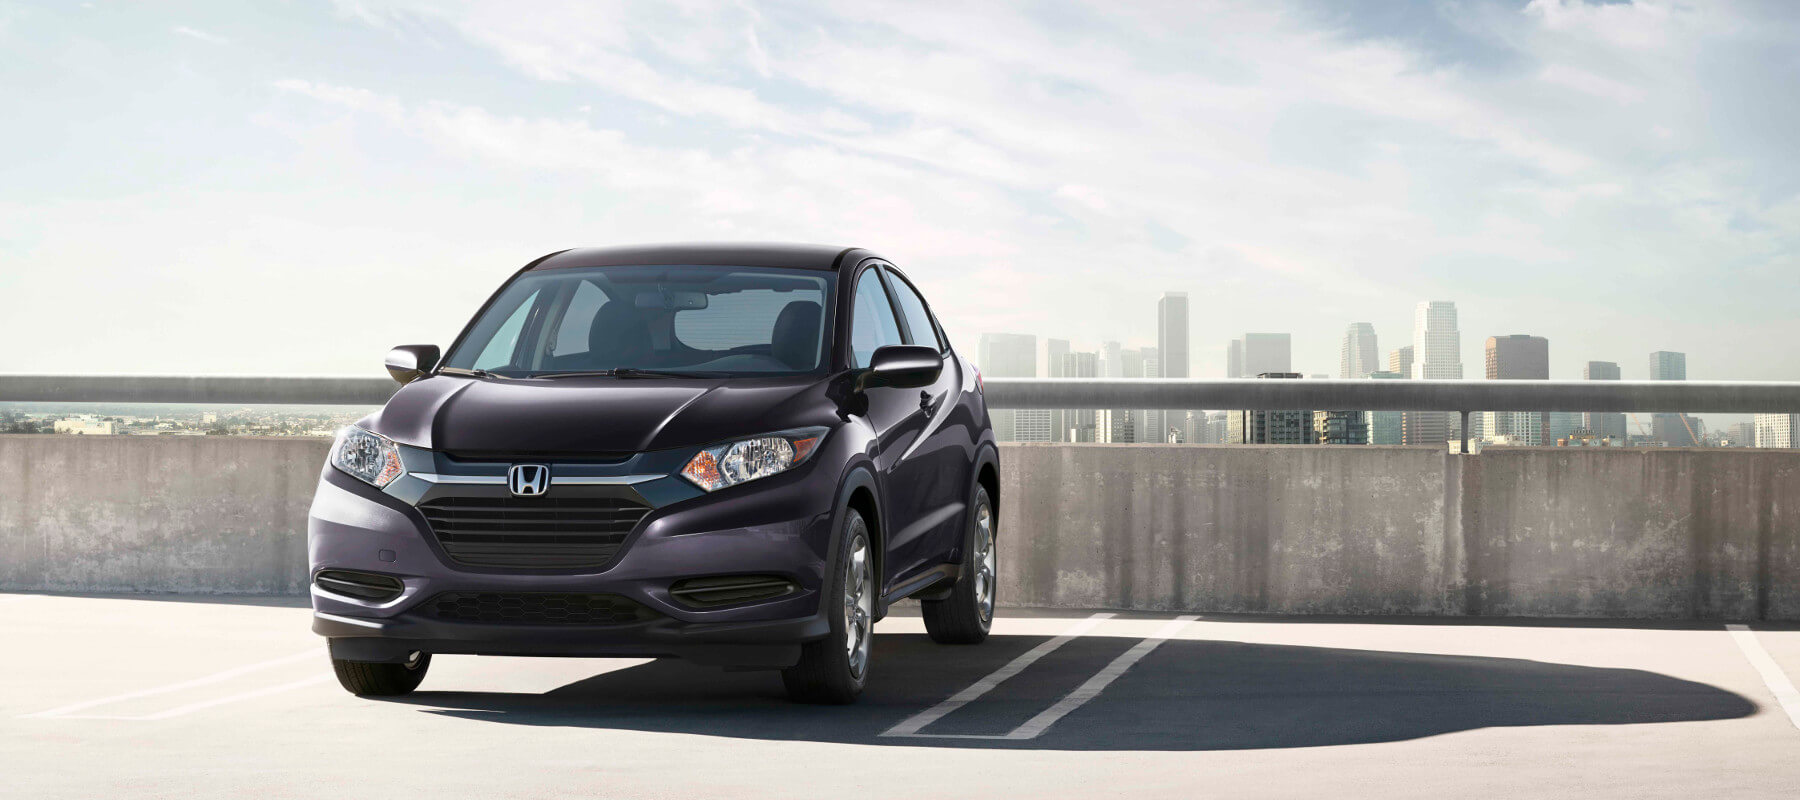 It Can Be Tough For A Vehicle To Shake The Stigma Of Being A Gas Guzzler,  But Honda Has Helped Vehicles Like The Pilot, HR V, And CR V Become Some Of  The ...